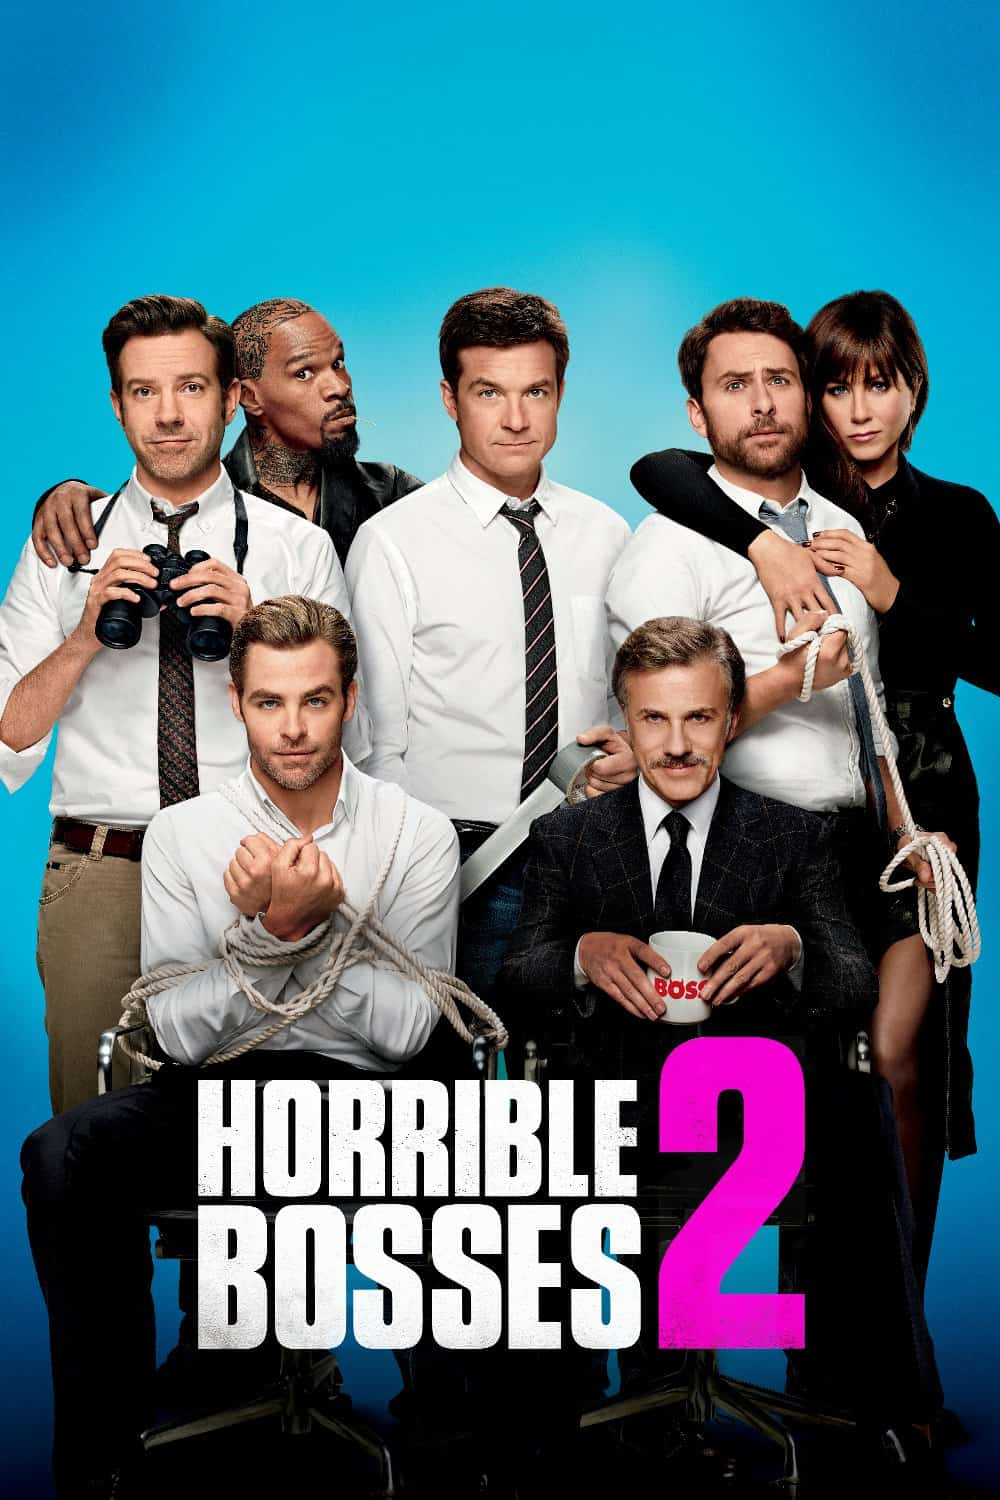 Horrible Bosses 2, 2014